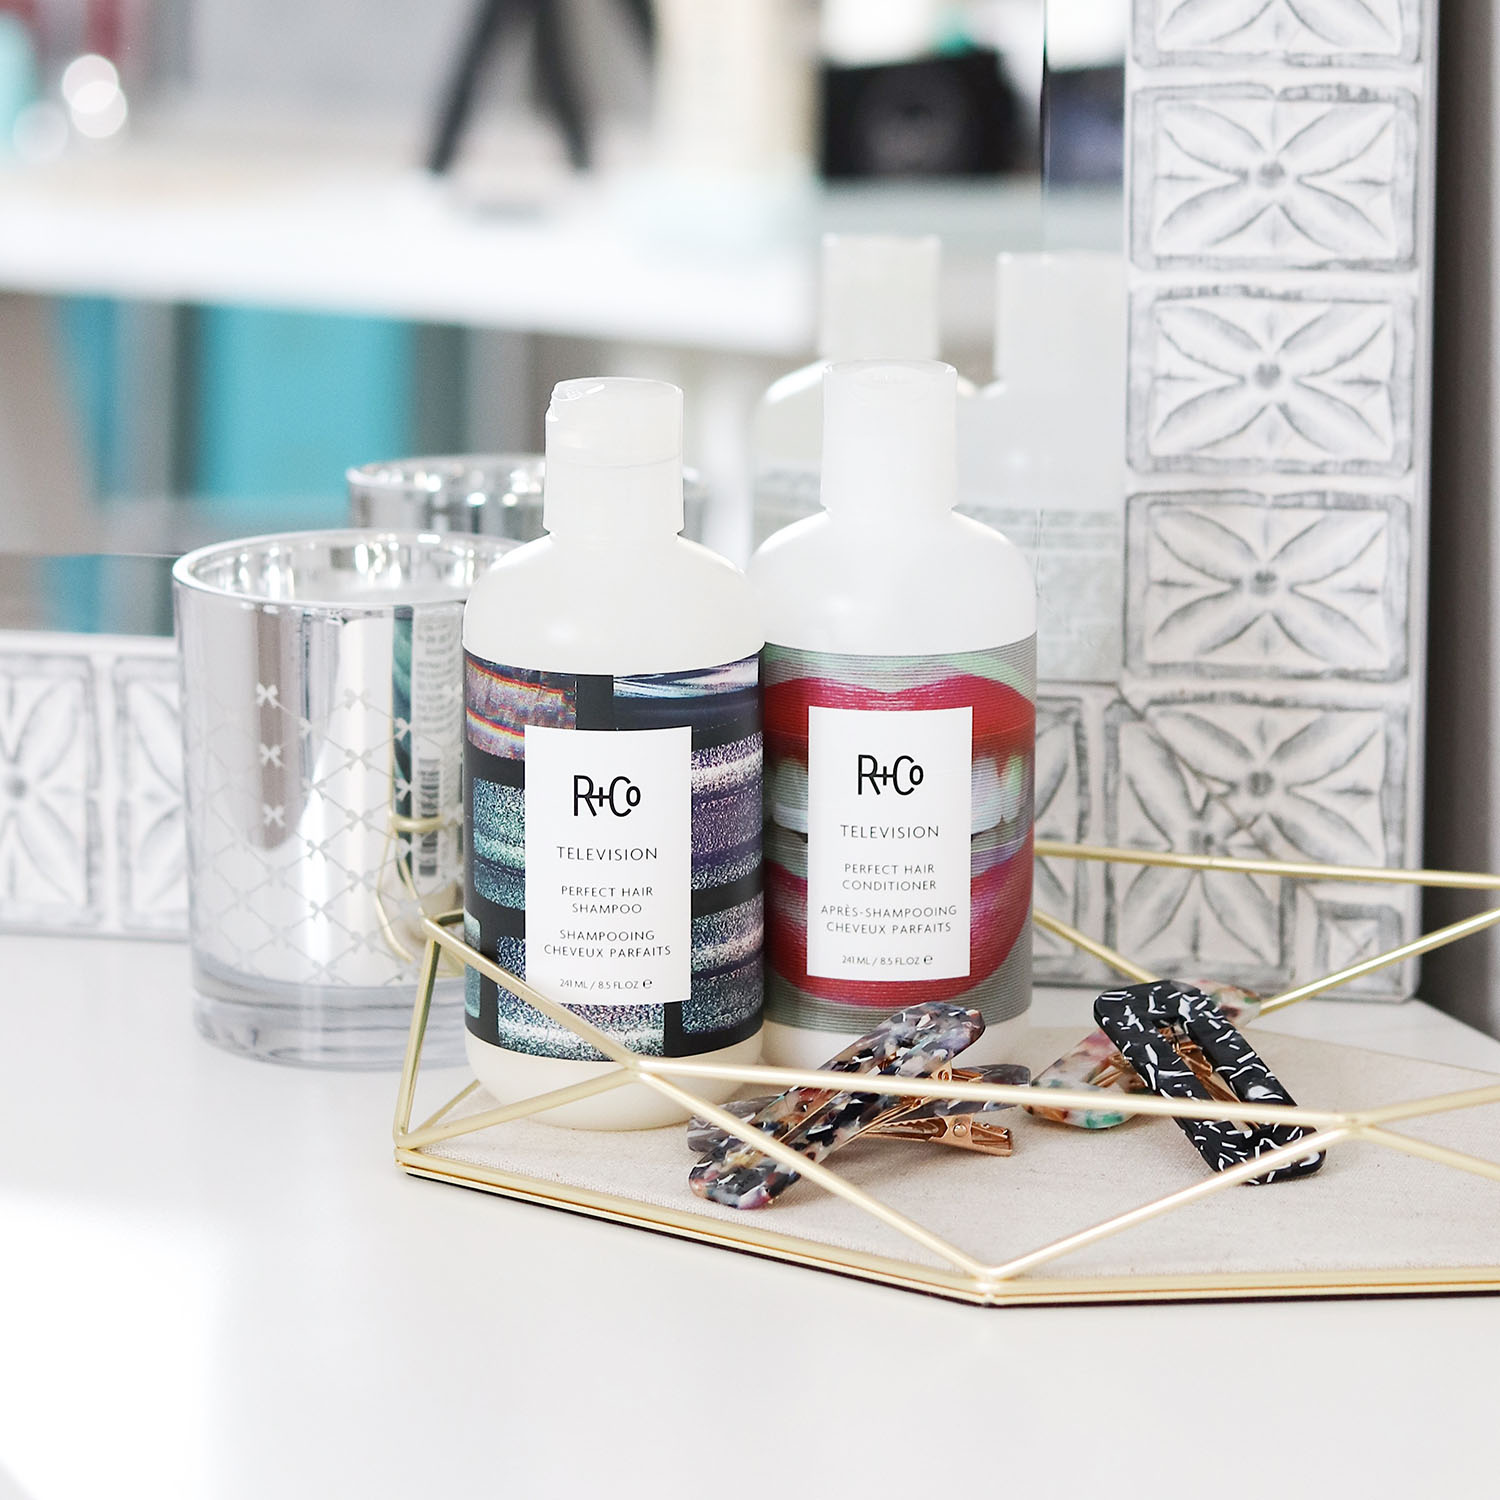 All of my favorite hair care products for blonde ash platinum hair | favorite hair products for healthy voluminous blonde hair brighter darling | R and Co Television Hair Products